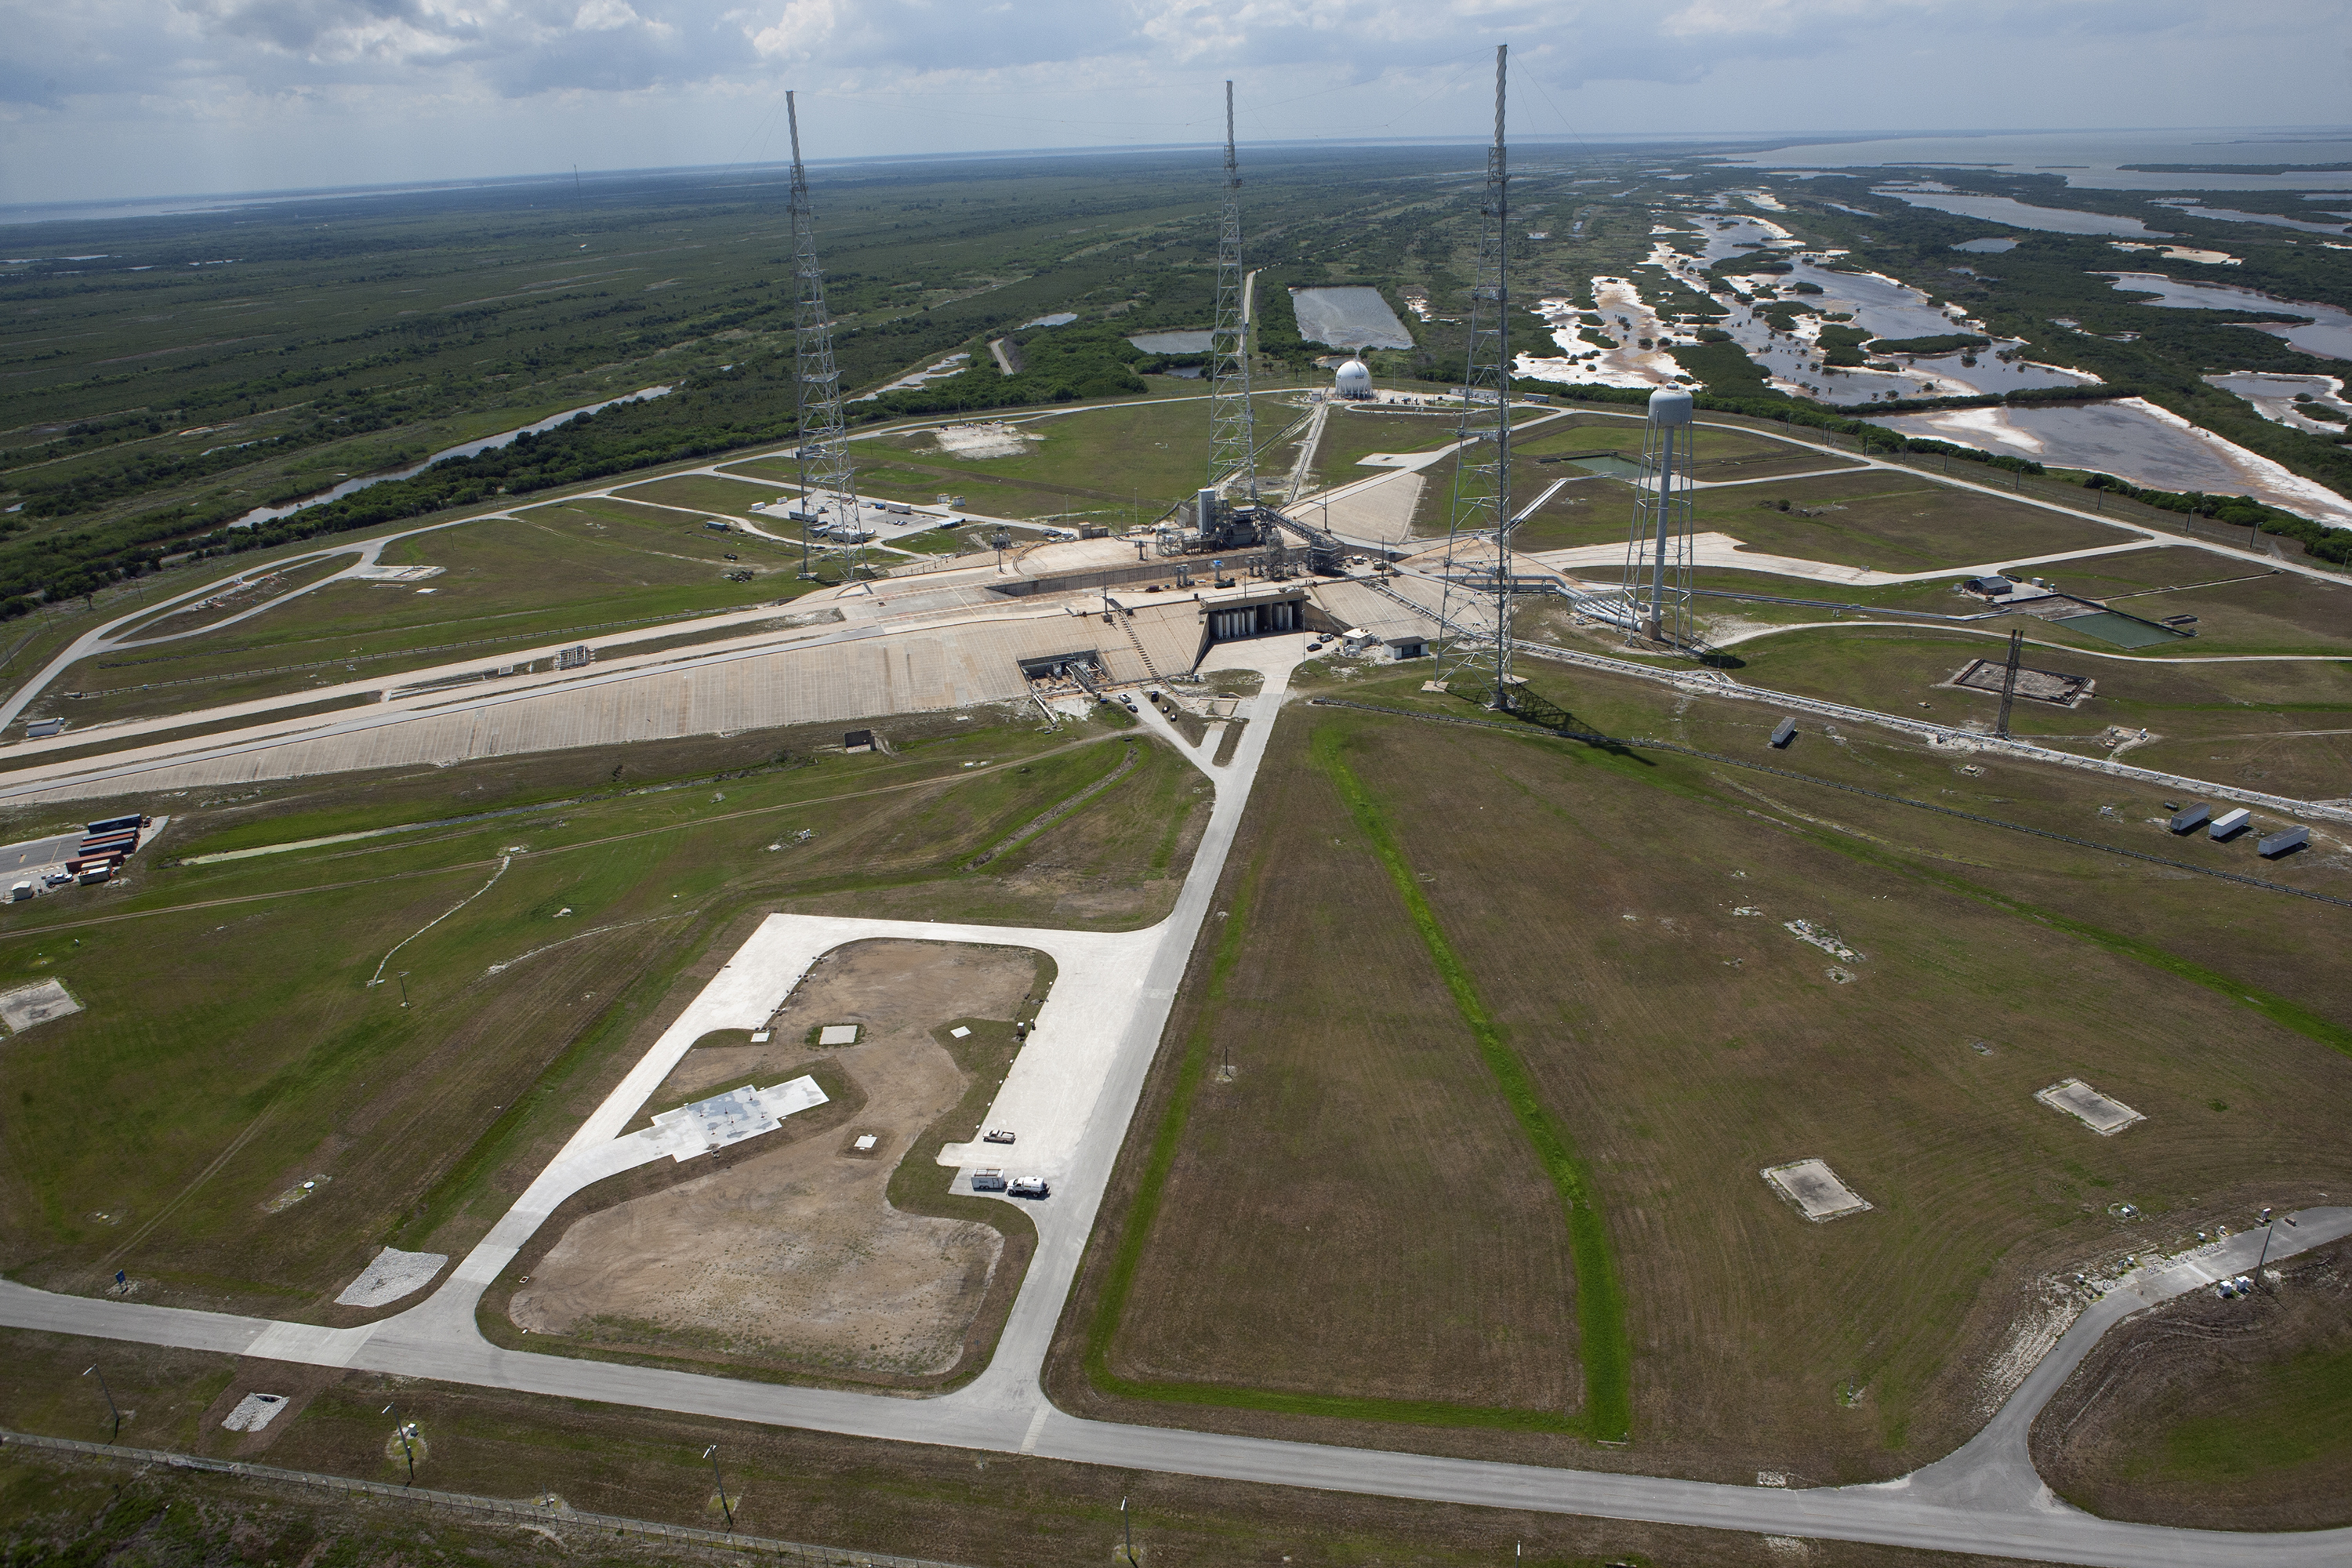 An aerial view of Pad 39C within the perimeter of Pad 39B at NASA's Kennedy Space Center in Florida.A computer-aided aerial image of Launch Pad 39B, and the new Small Class Vehicle Launch Pad, designated Pad 39C, in the southeast area of the perimeter of pad B. Credits: NASA/David Zeiters